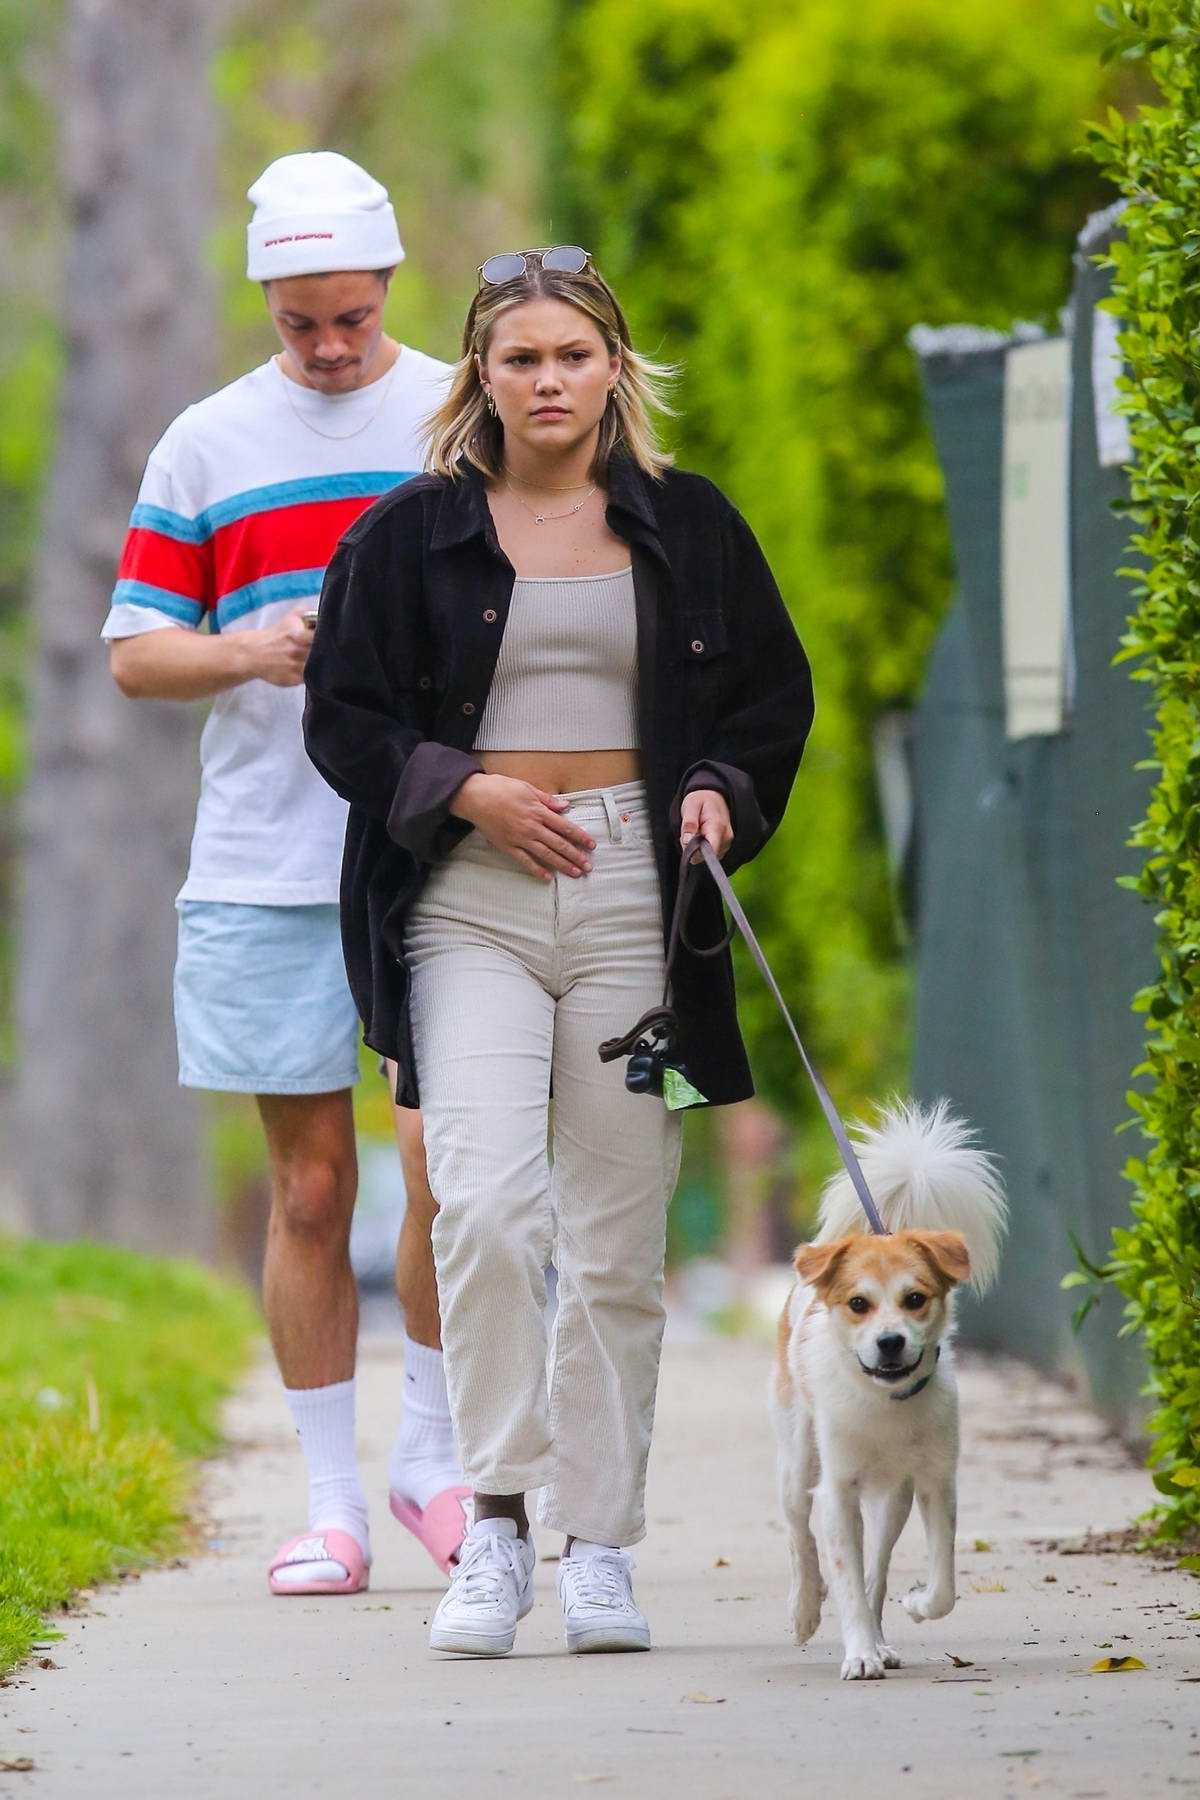 Olivia Holt looks great as she steps out to walk her dog with a friend in Los Angeles